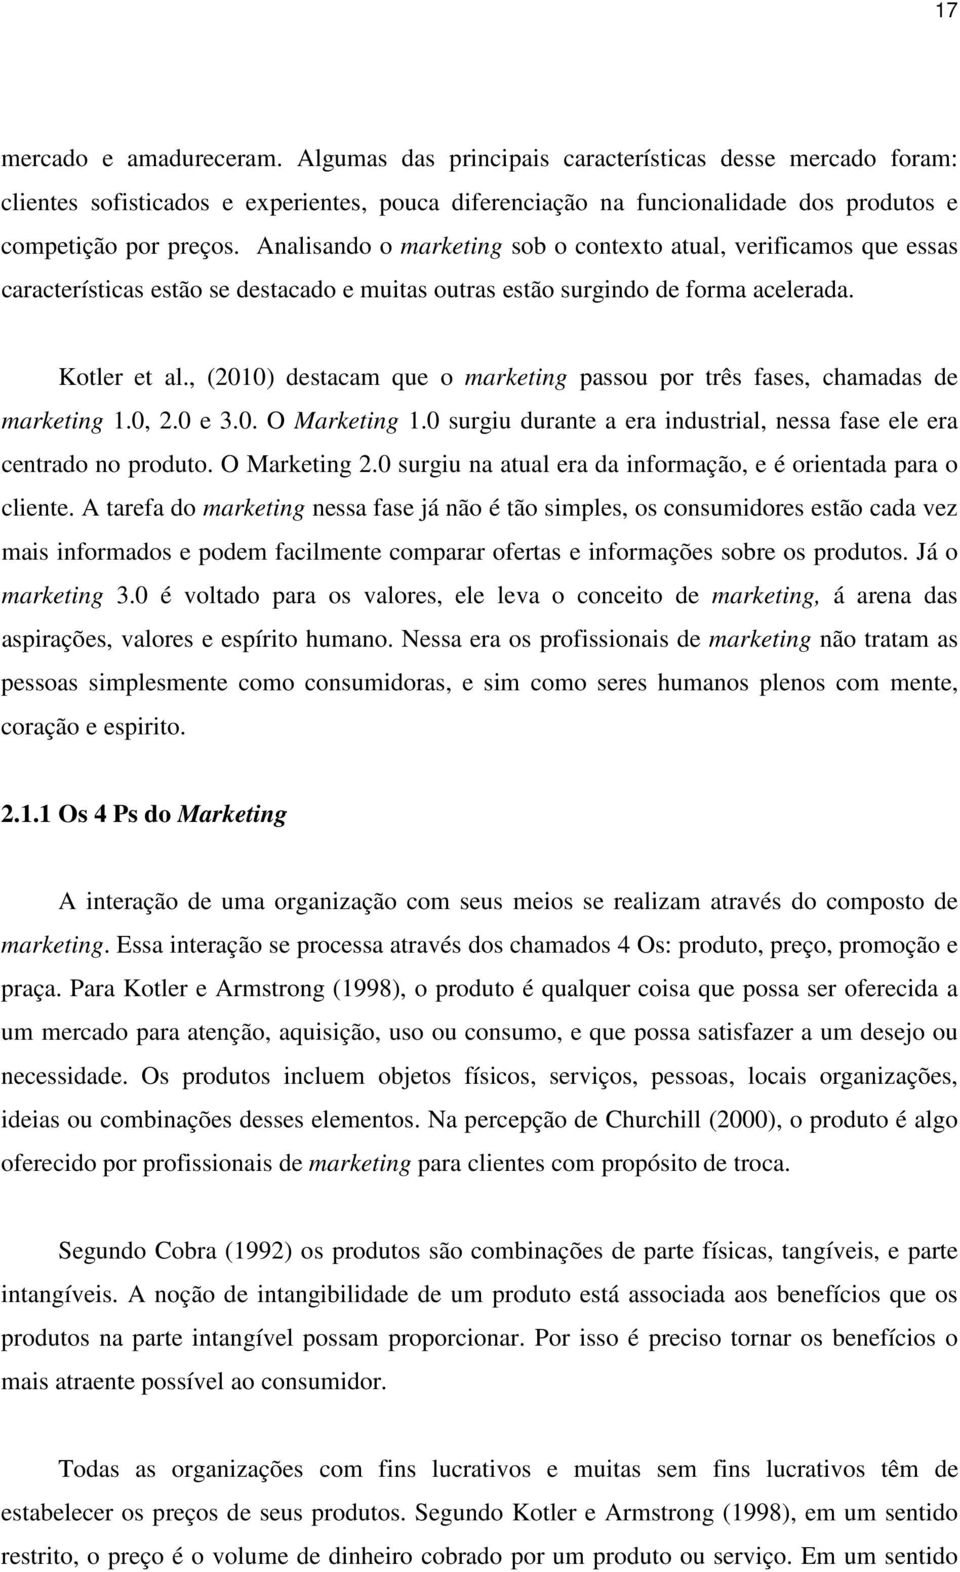 , (2010) destacam que o marketing passou por três fases, chamadas de marketing 1.0, 2.0 e 3.0. O Marketing 1.0 surgiu durante a era industrial, nessa fase ele era centrado no produto. O Marketing 2.